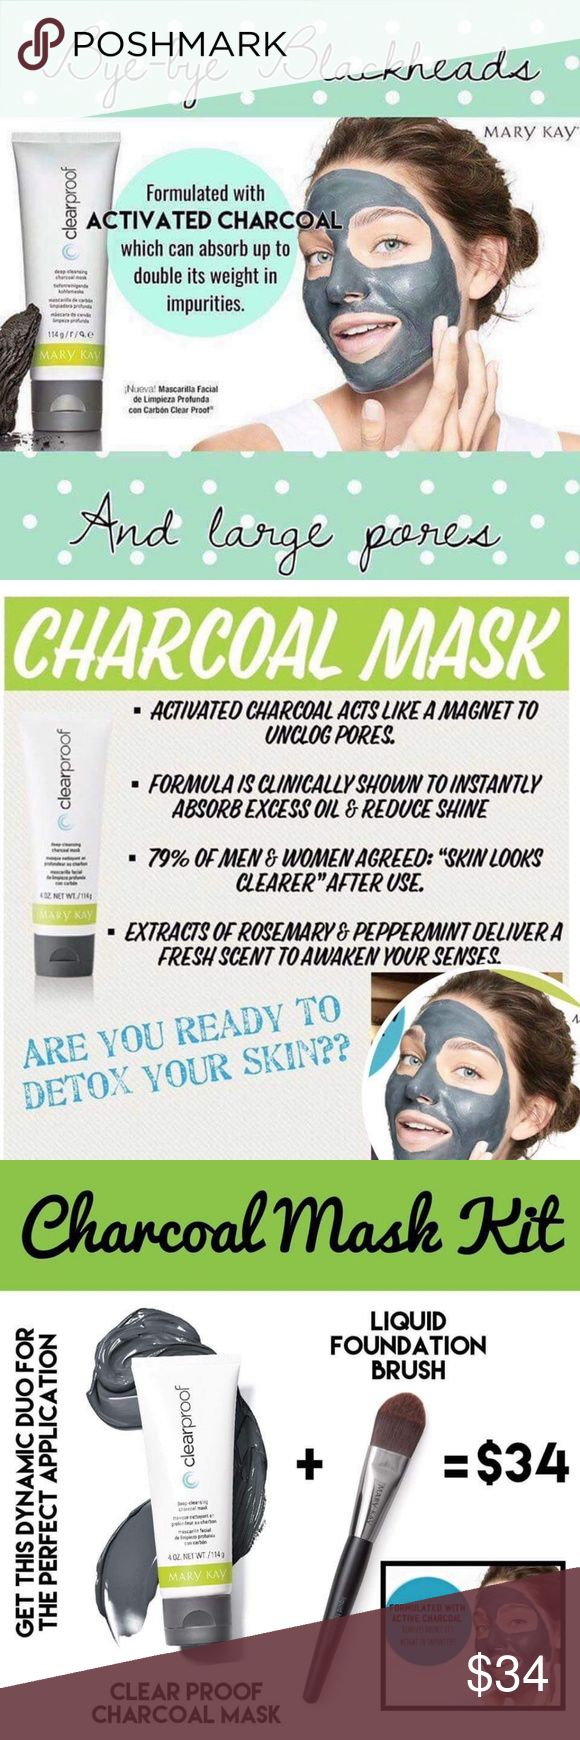 New MK Charcoal Mask--the hottest skincare! Preorder yours today! Mary Kay has nailed it ?? with infusions of honeysuckle ?? and navy bean extract! NO painful peel off (because you should love your face enough). Just a smooth wash off, and it smells amazing! It's gross and cool what you see come out of your skin! Mary Kay's activated charcoal mask pulls 2X it's weight in impurities out of your skin! One tube lasts for 30 masks at a cost of less than $.80 cents per mask. Plus, it's already…